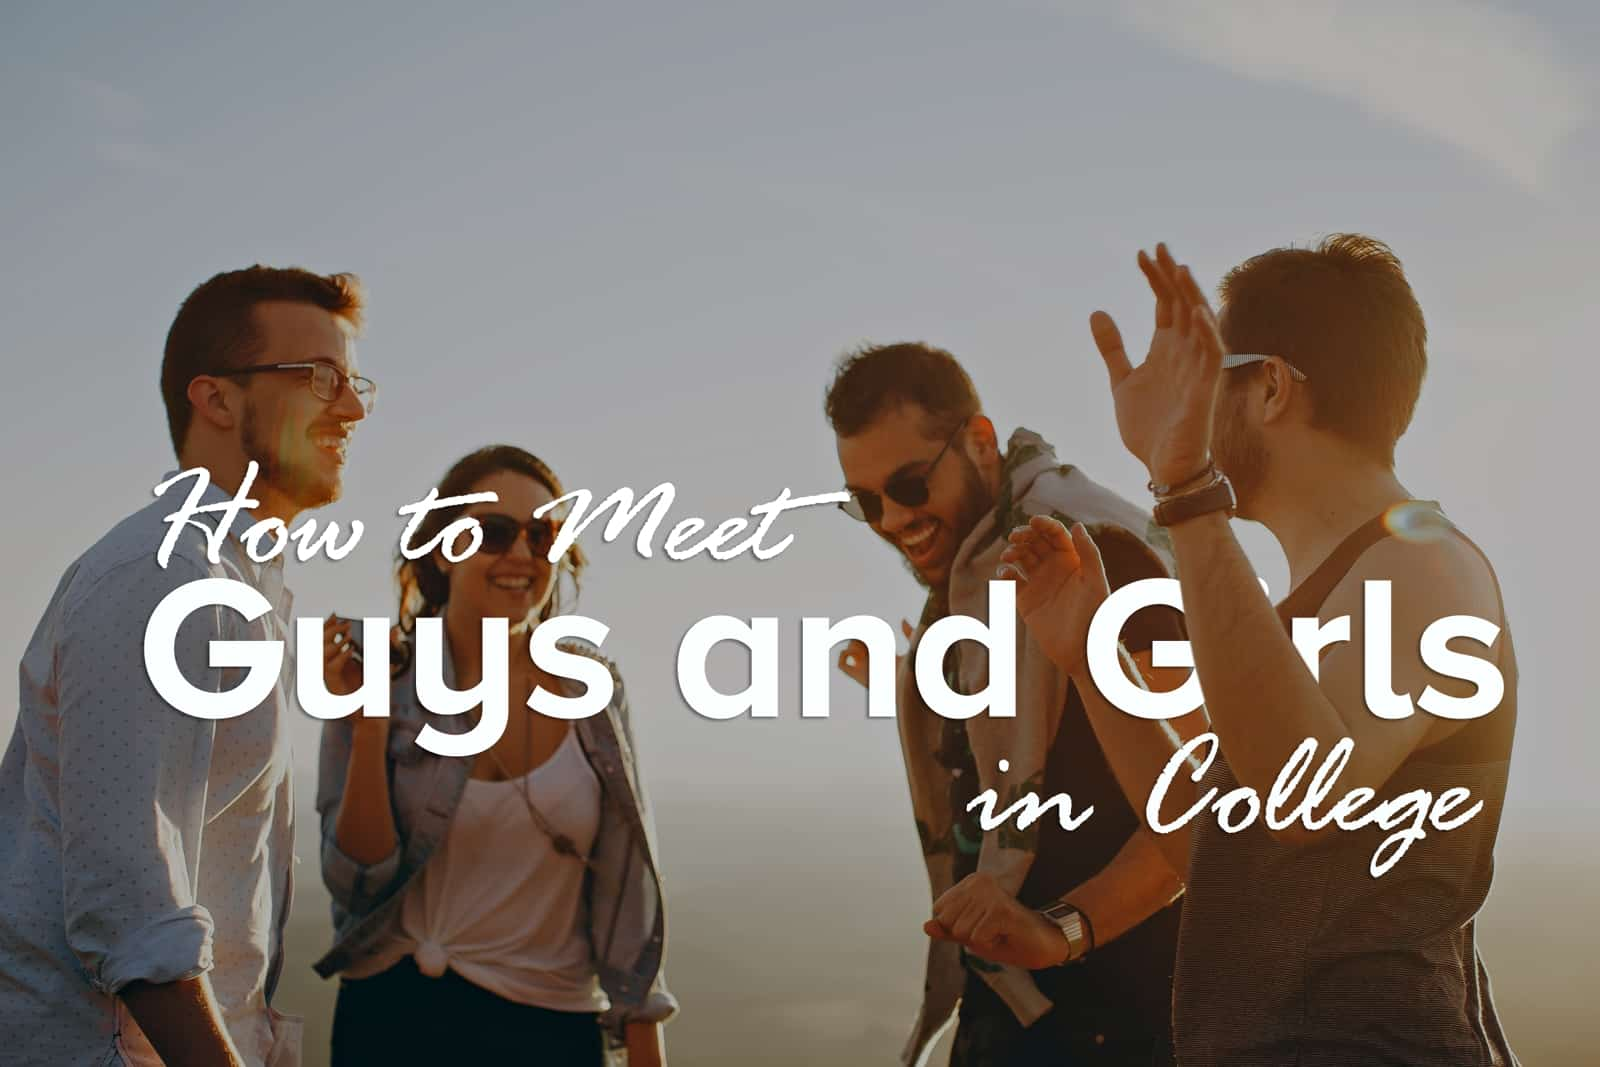 How to meet guys and girls in college